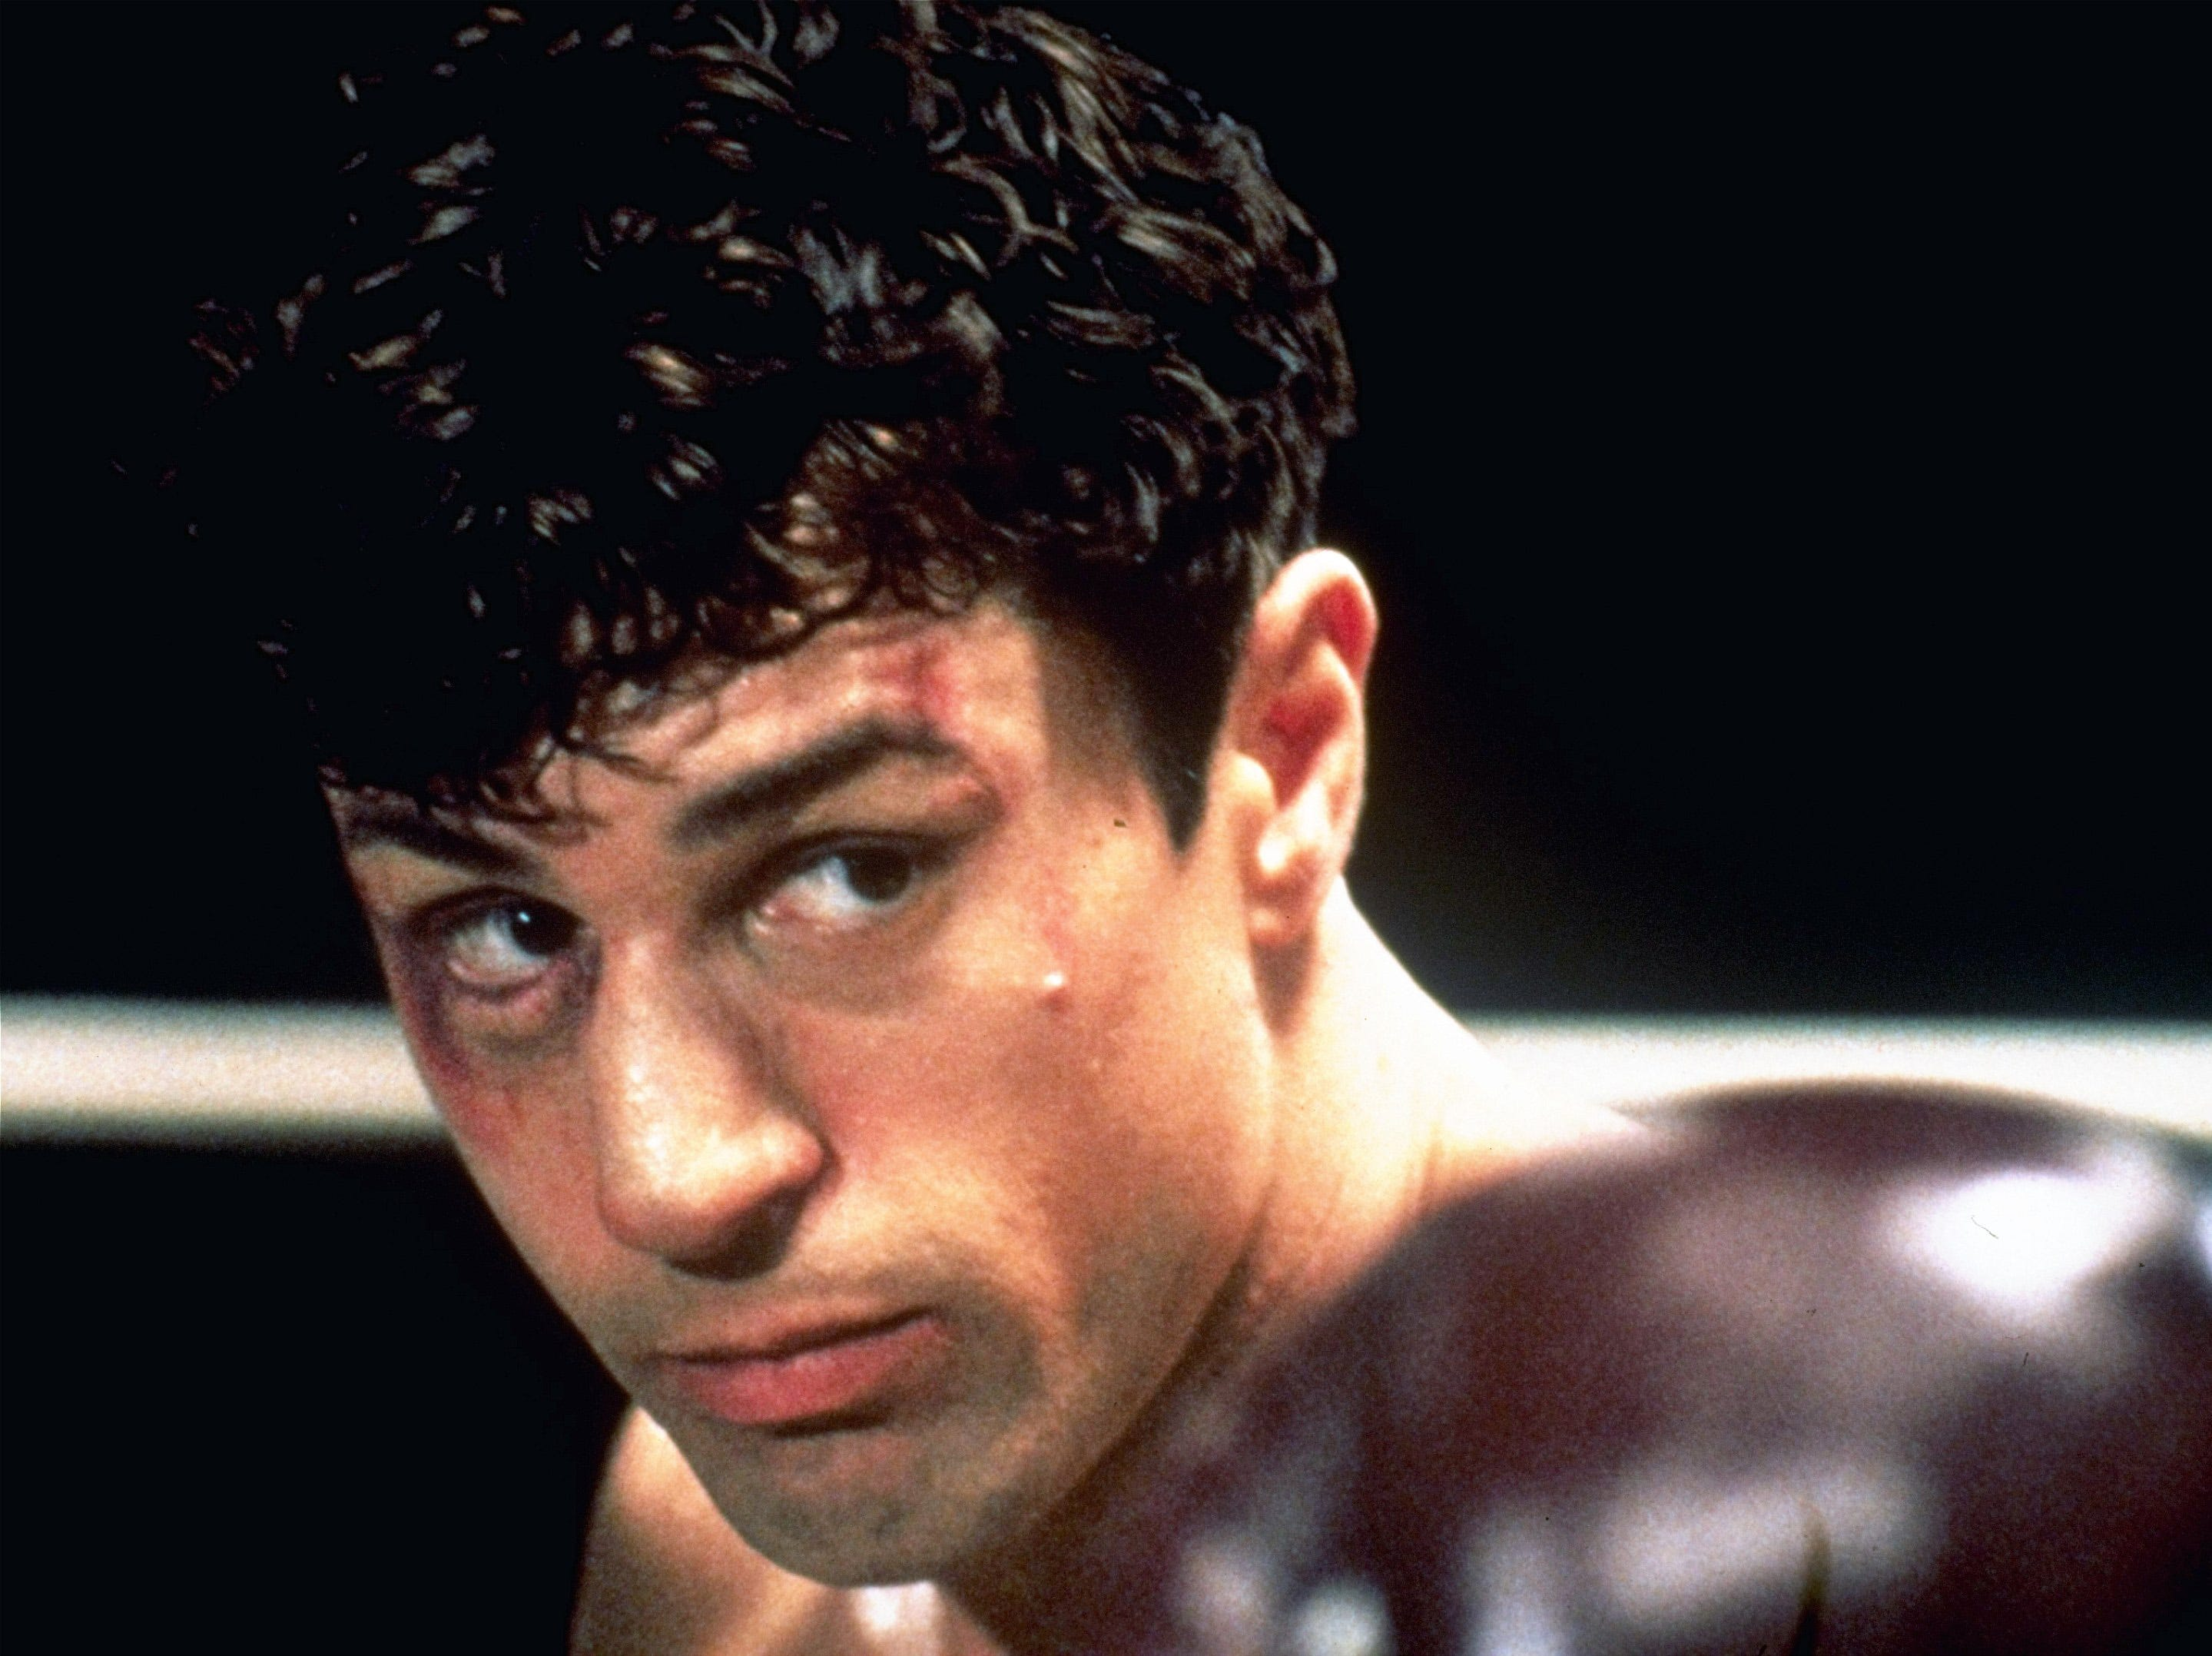 """In this 1980 file photo originally released by United Artists, Robert De Niro is shown in a scene from """"Raging Bull."""""""